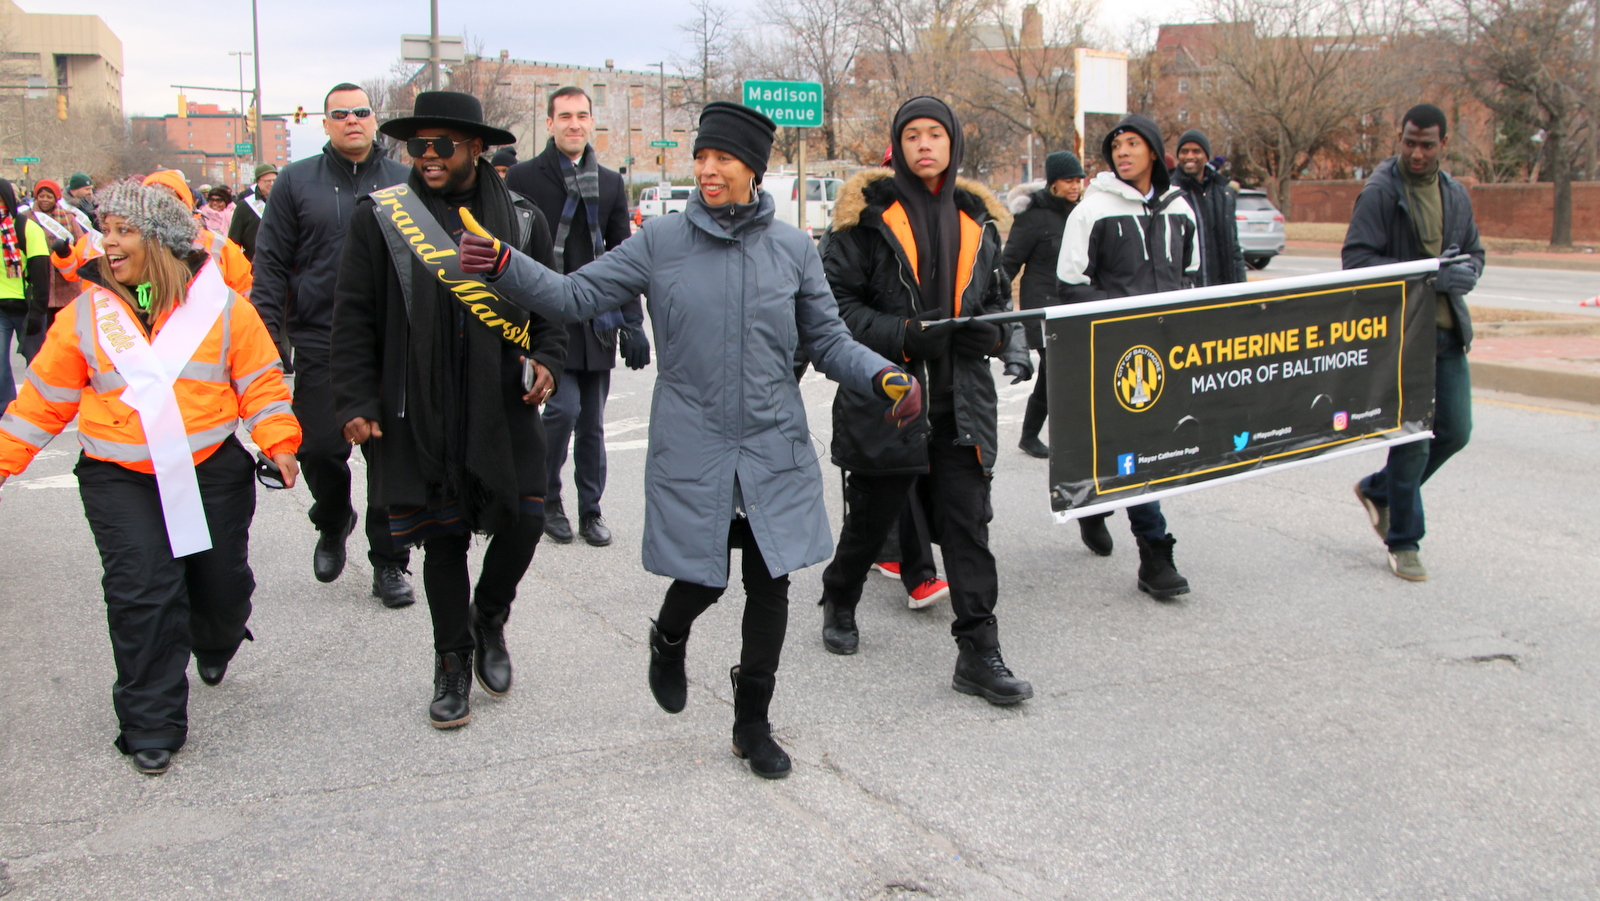 Grand Marshall Davon Fleming and Mayor Catherine Pugh lead Baltimore's Martin Luther King Day Parade. (Fern Shen)